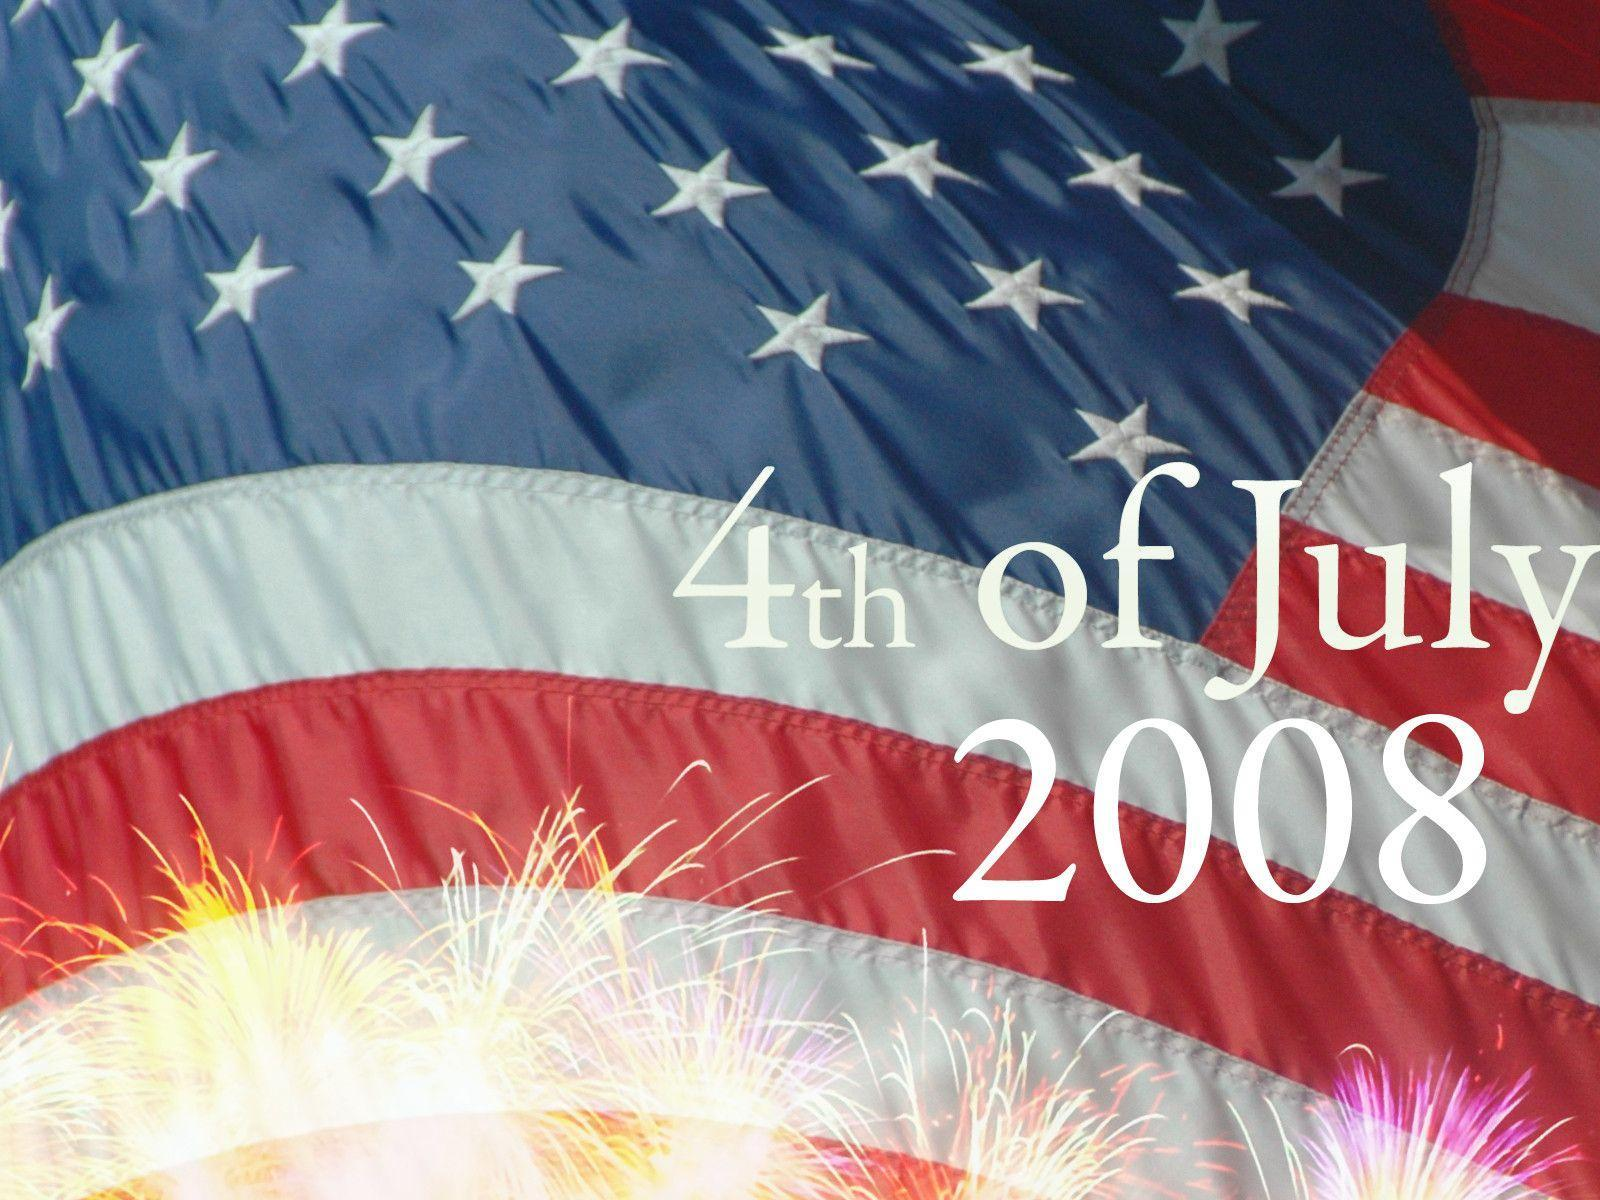 4th of July 2008 Wallpaper | Digital Revolutions